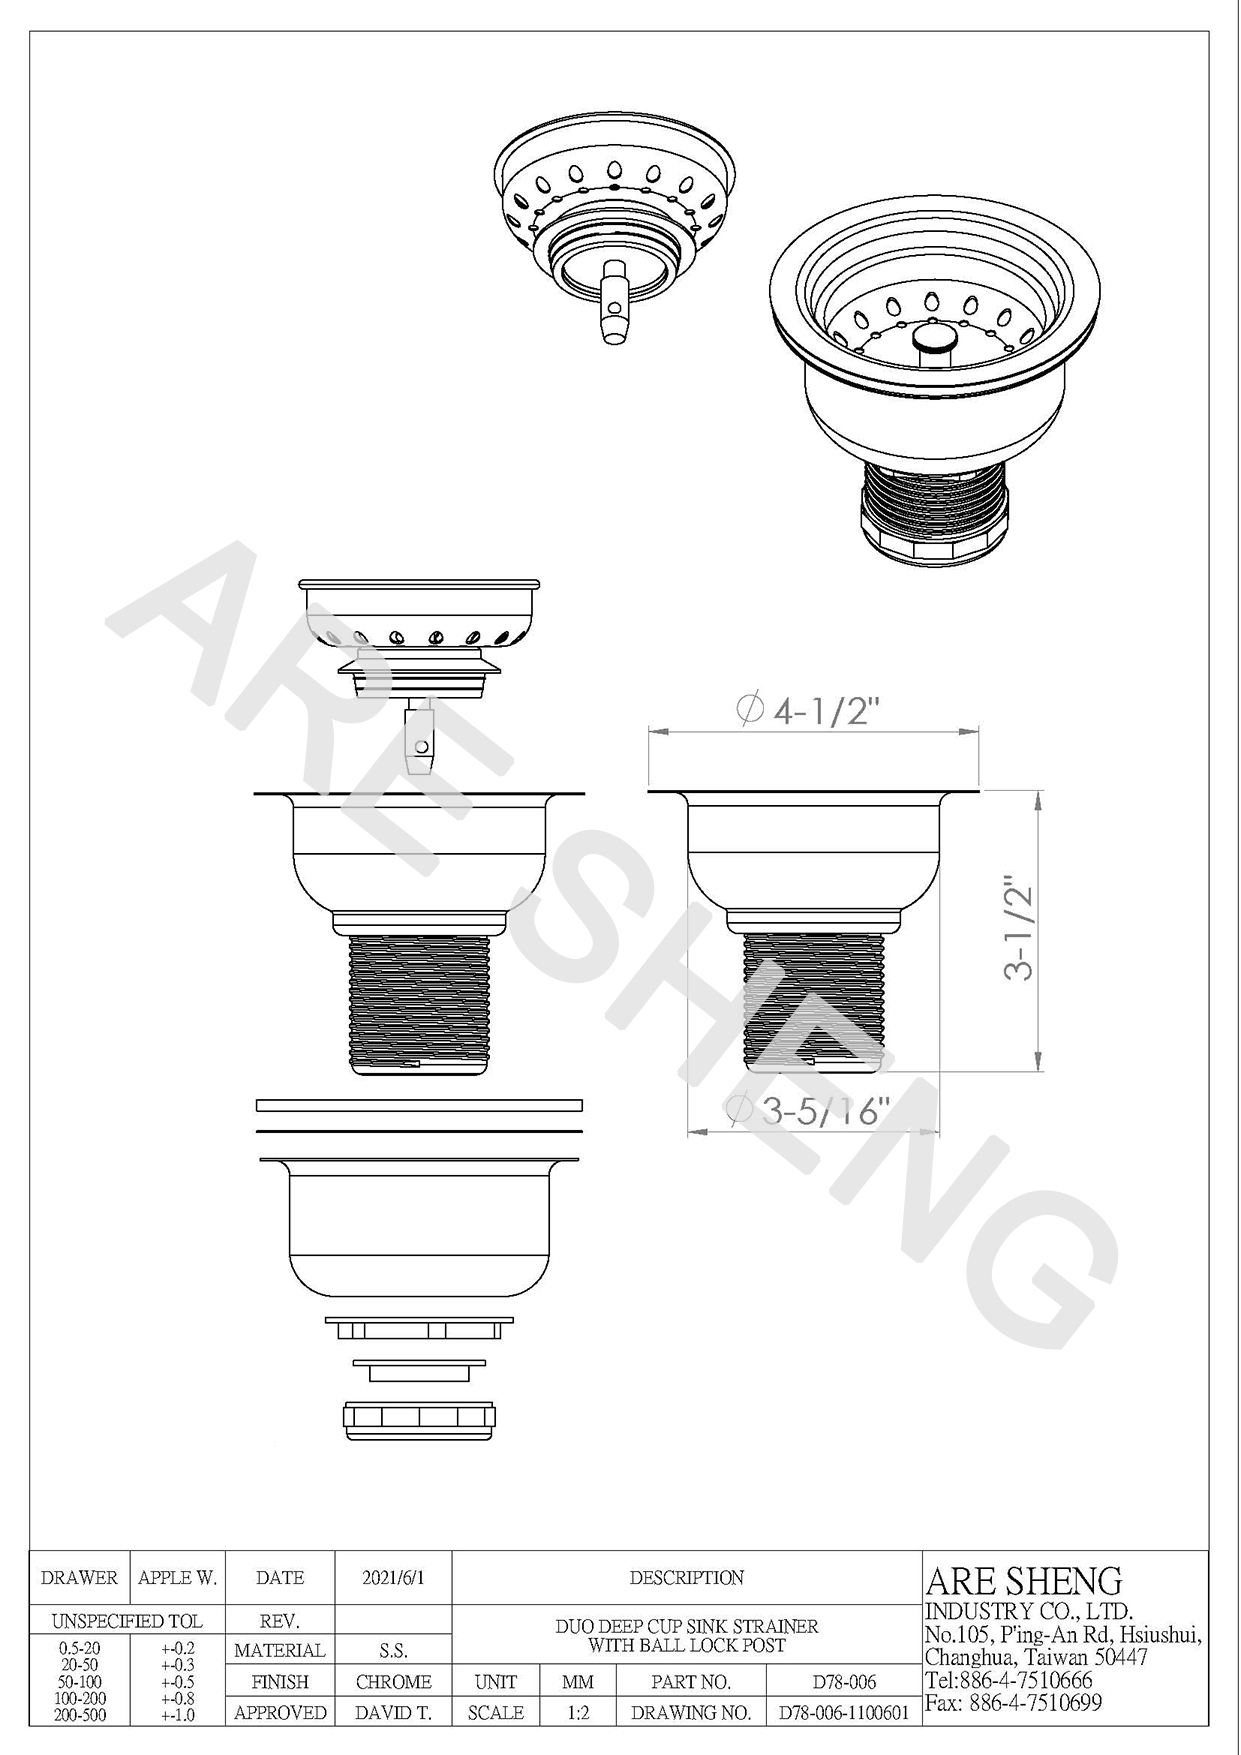 dimension drawing of sink strainer